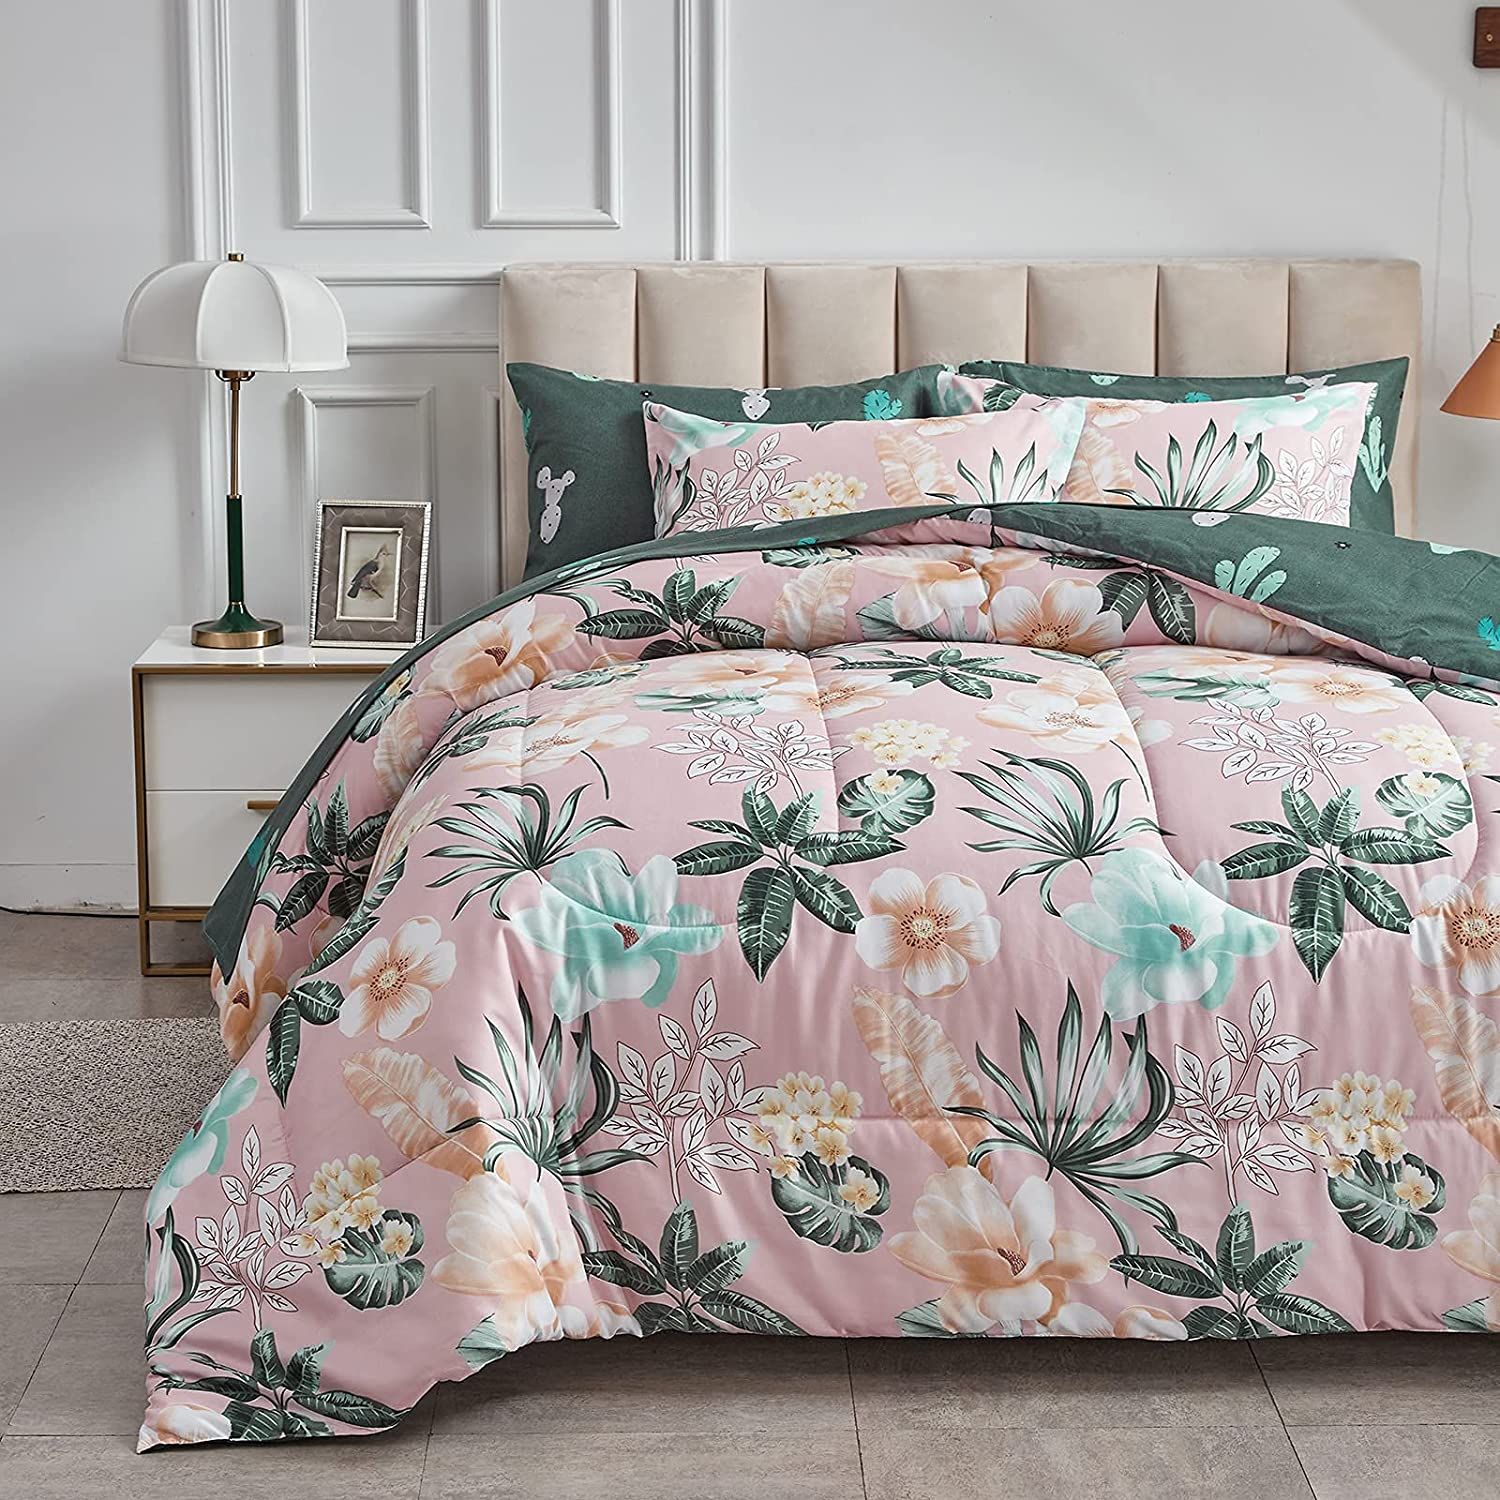 Uozzi Bedding Max 43% OFF Bed in a Bag 7 Pink Green Size Award-winning store Pieces Queen Leaves